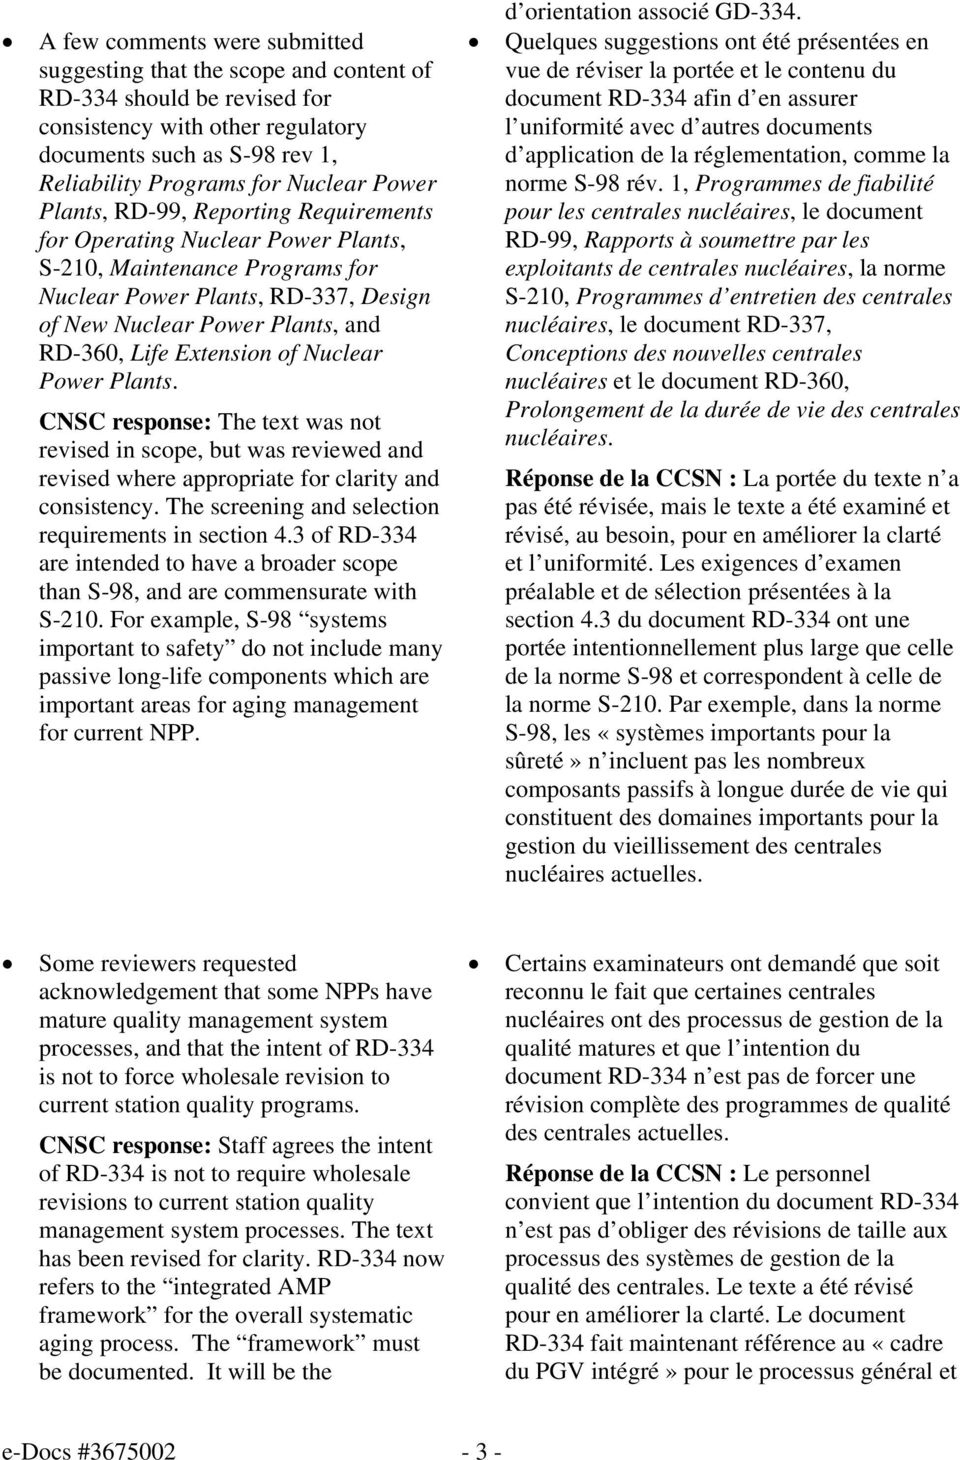 Extension of Nuclear Power Plants. CNSC response: The text was not revised in scope, but was reviewed and revised where appropriate for clarity and consistency.